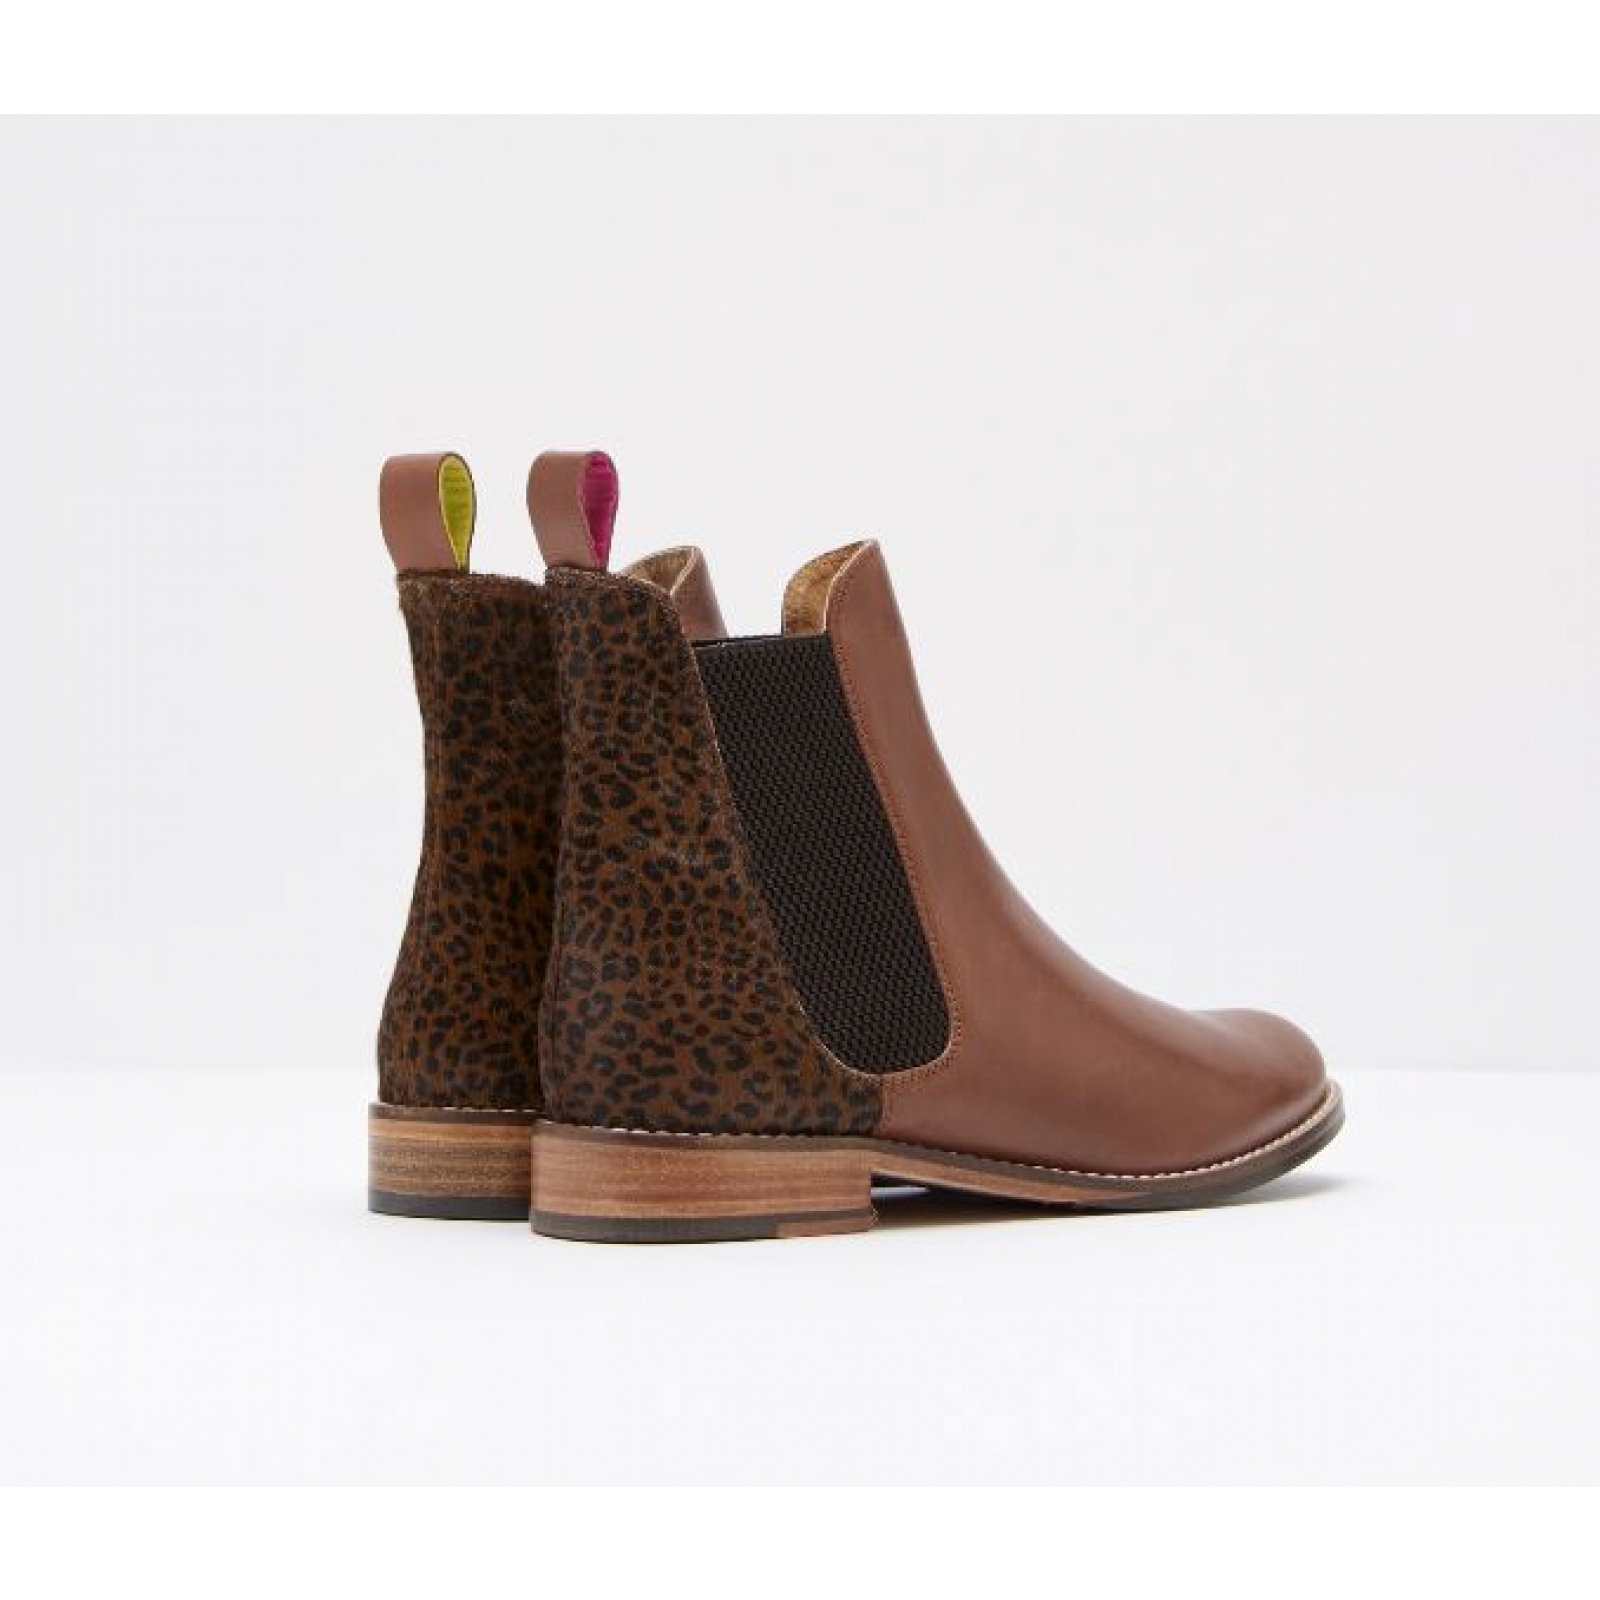 Joules-Westbourne-Premium-Leather-Chelsea-Boot-ALL-COLOURS miniature 15